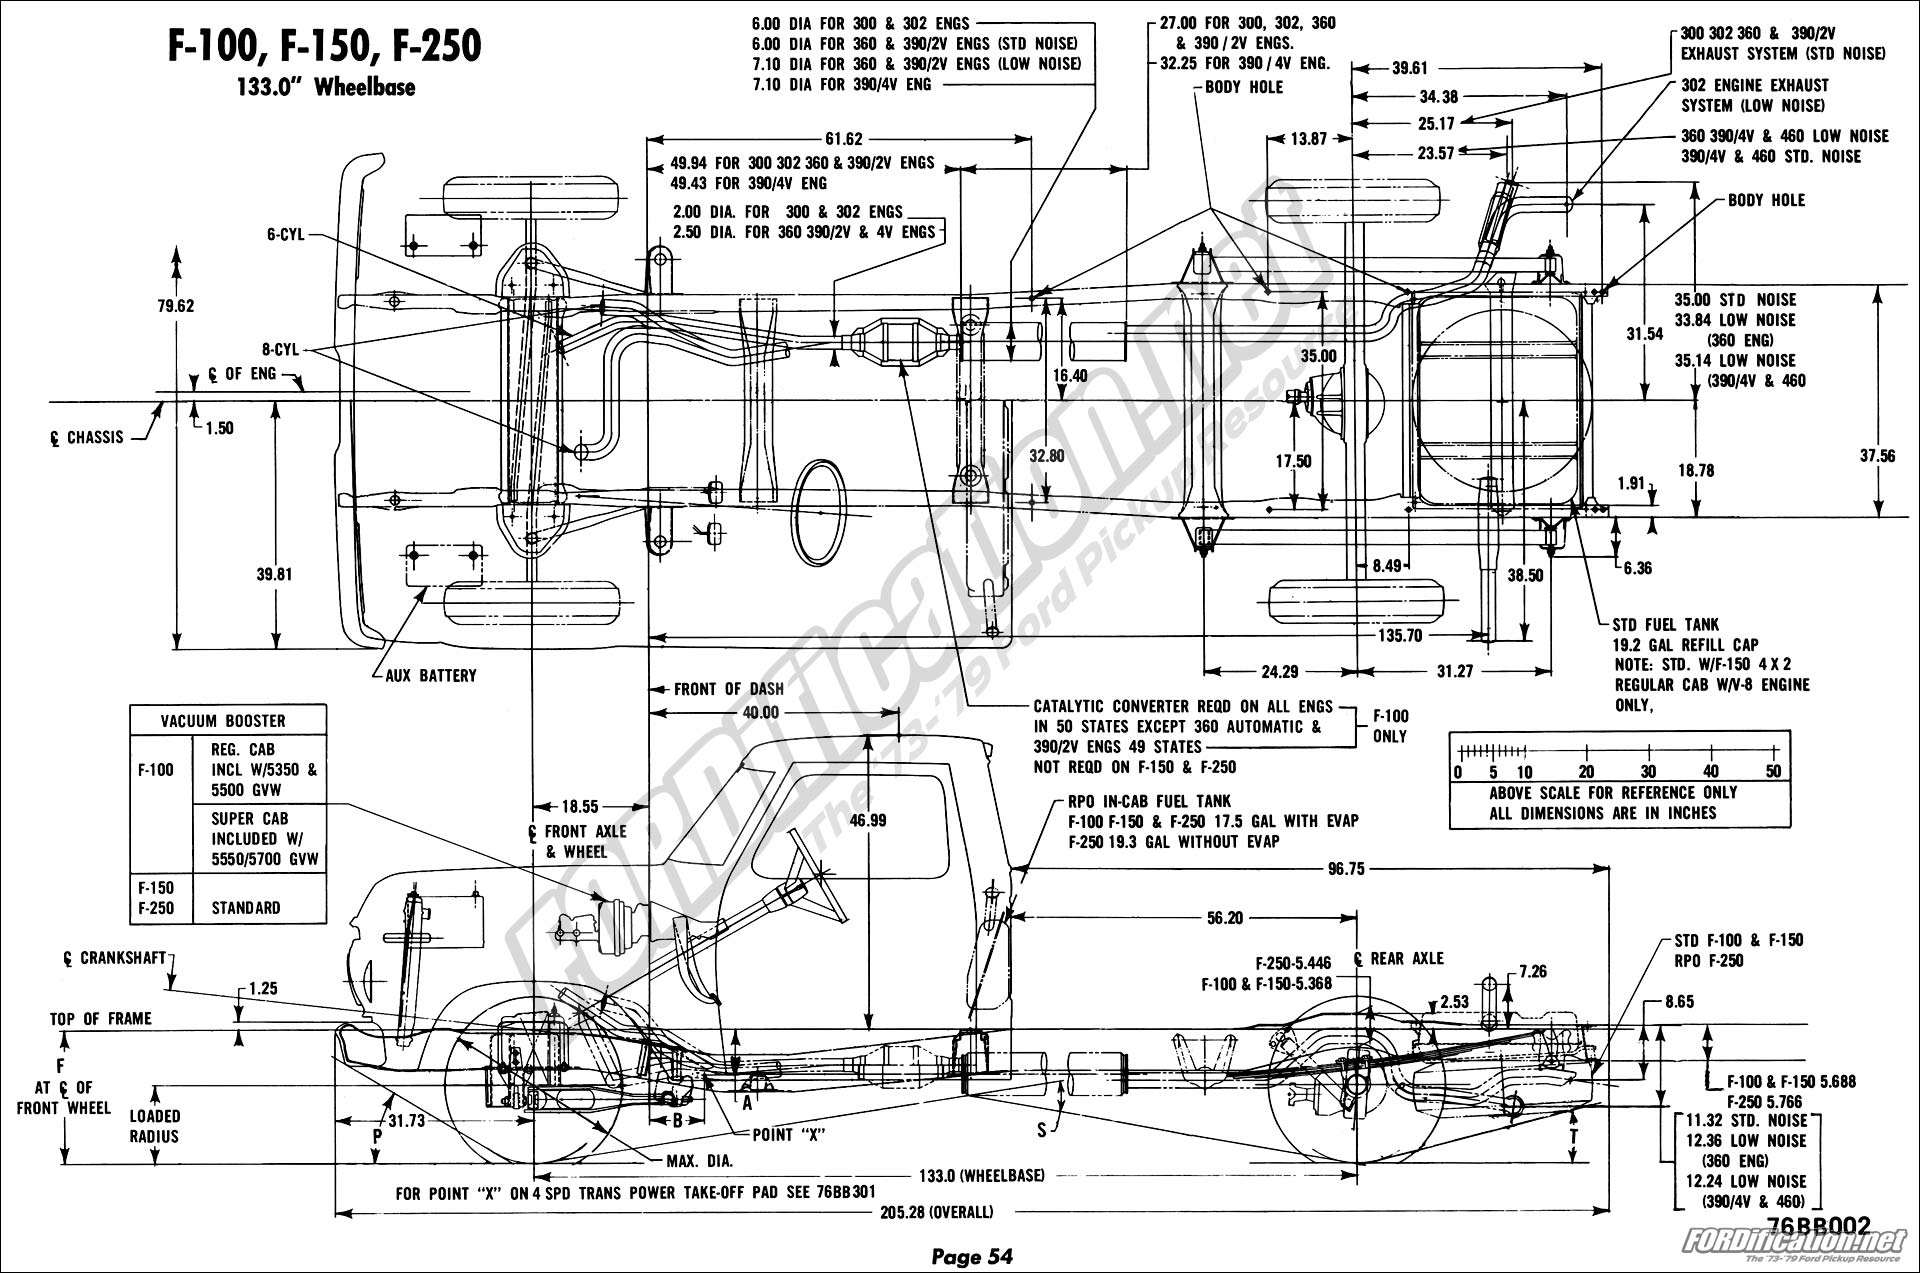 mustang ignition switch wiring diagram mustang discover your 351 cleveland engine diagram